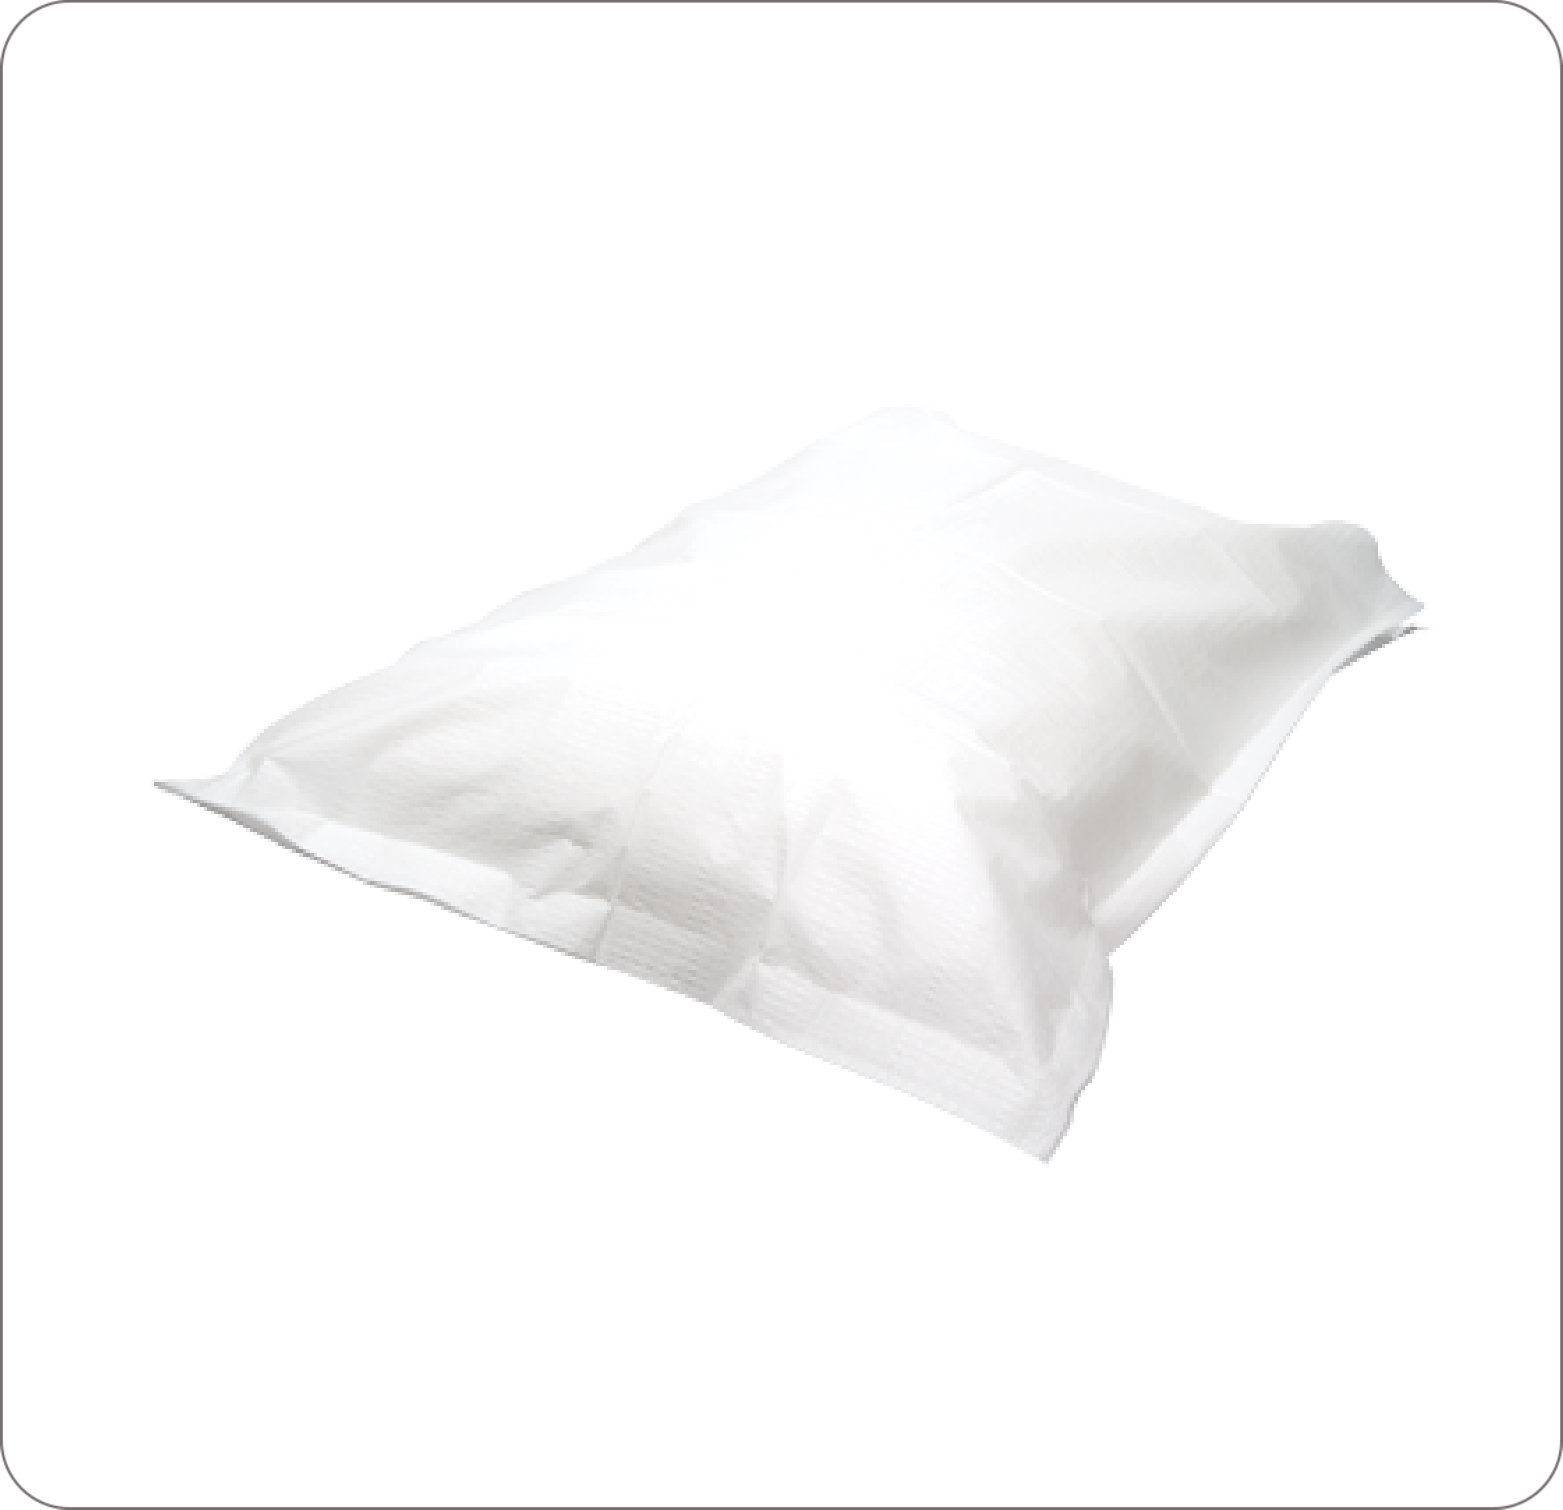 "Pillowcase Disposable ProAdv 21X30"" White"